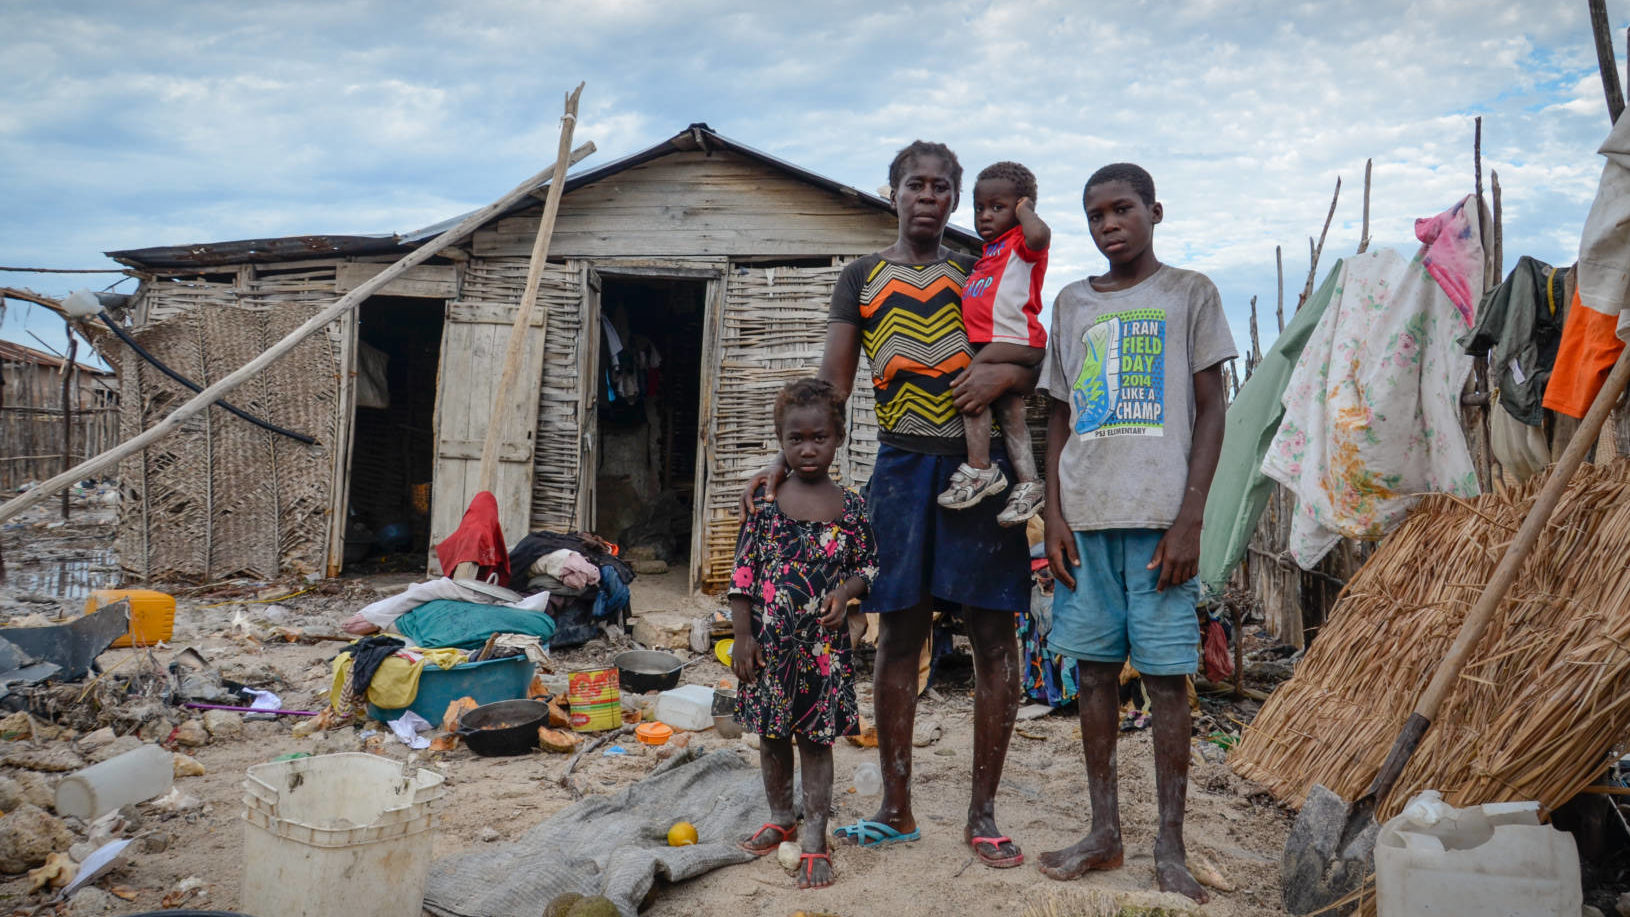 Hurricane Matthew photos: After Hurricane Matthew in Haiti, mom, stands with children in front of damaged house